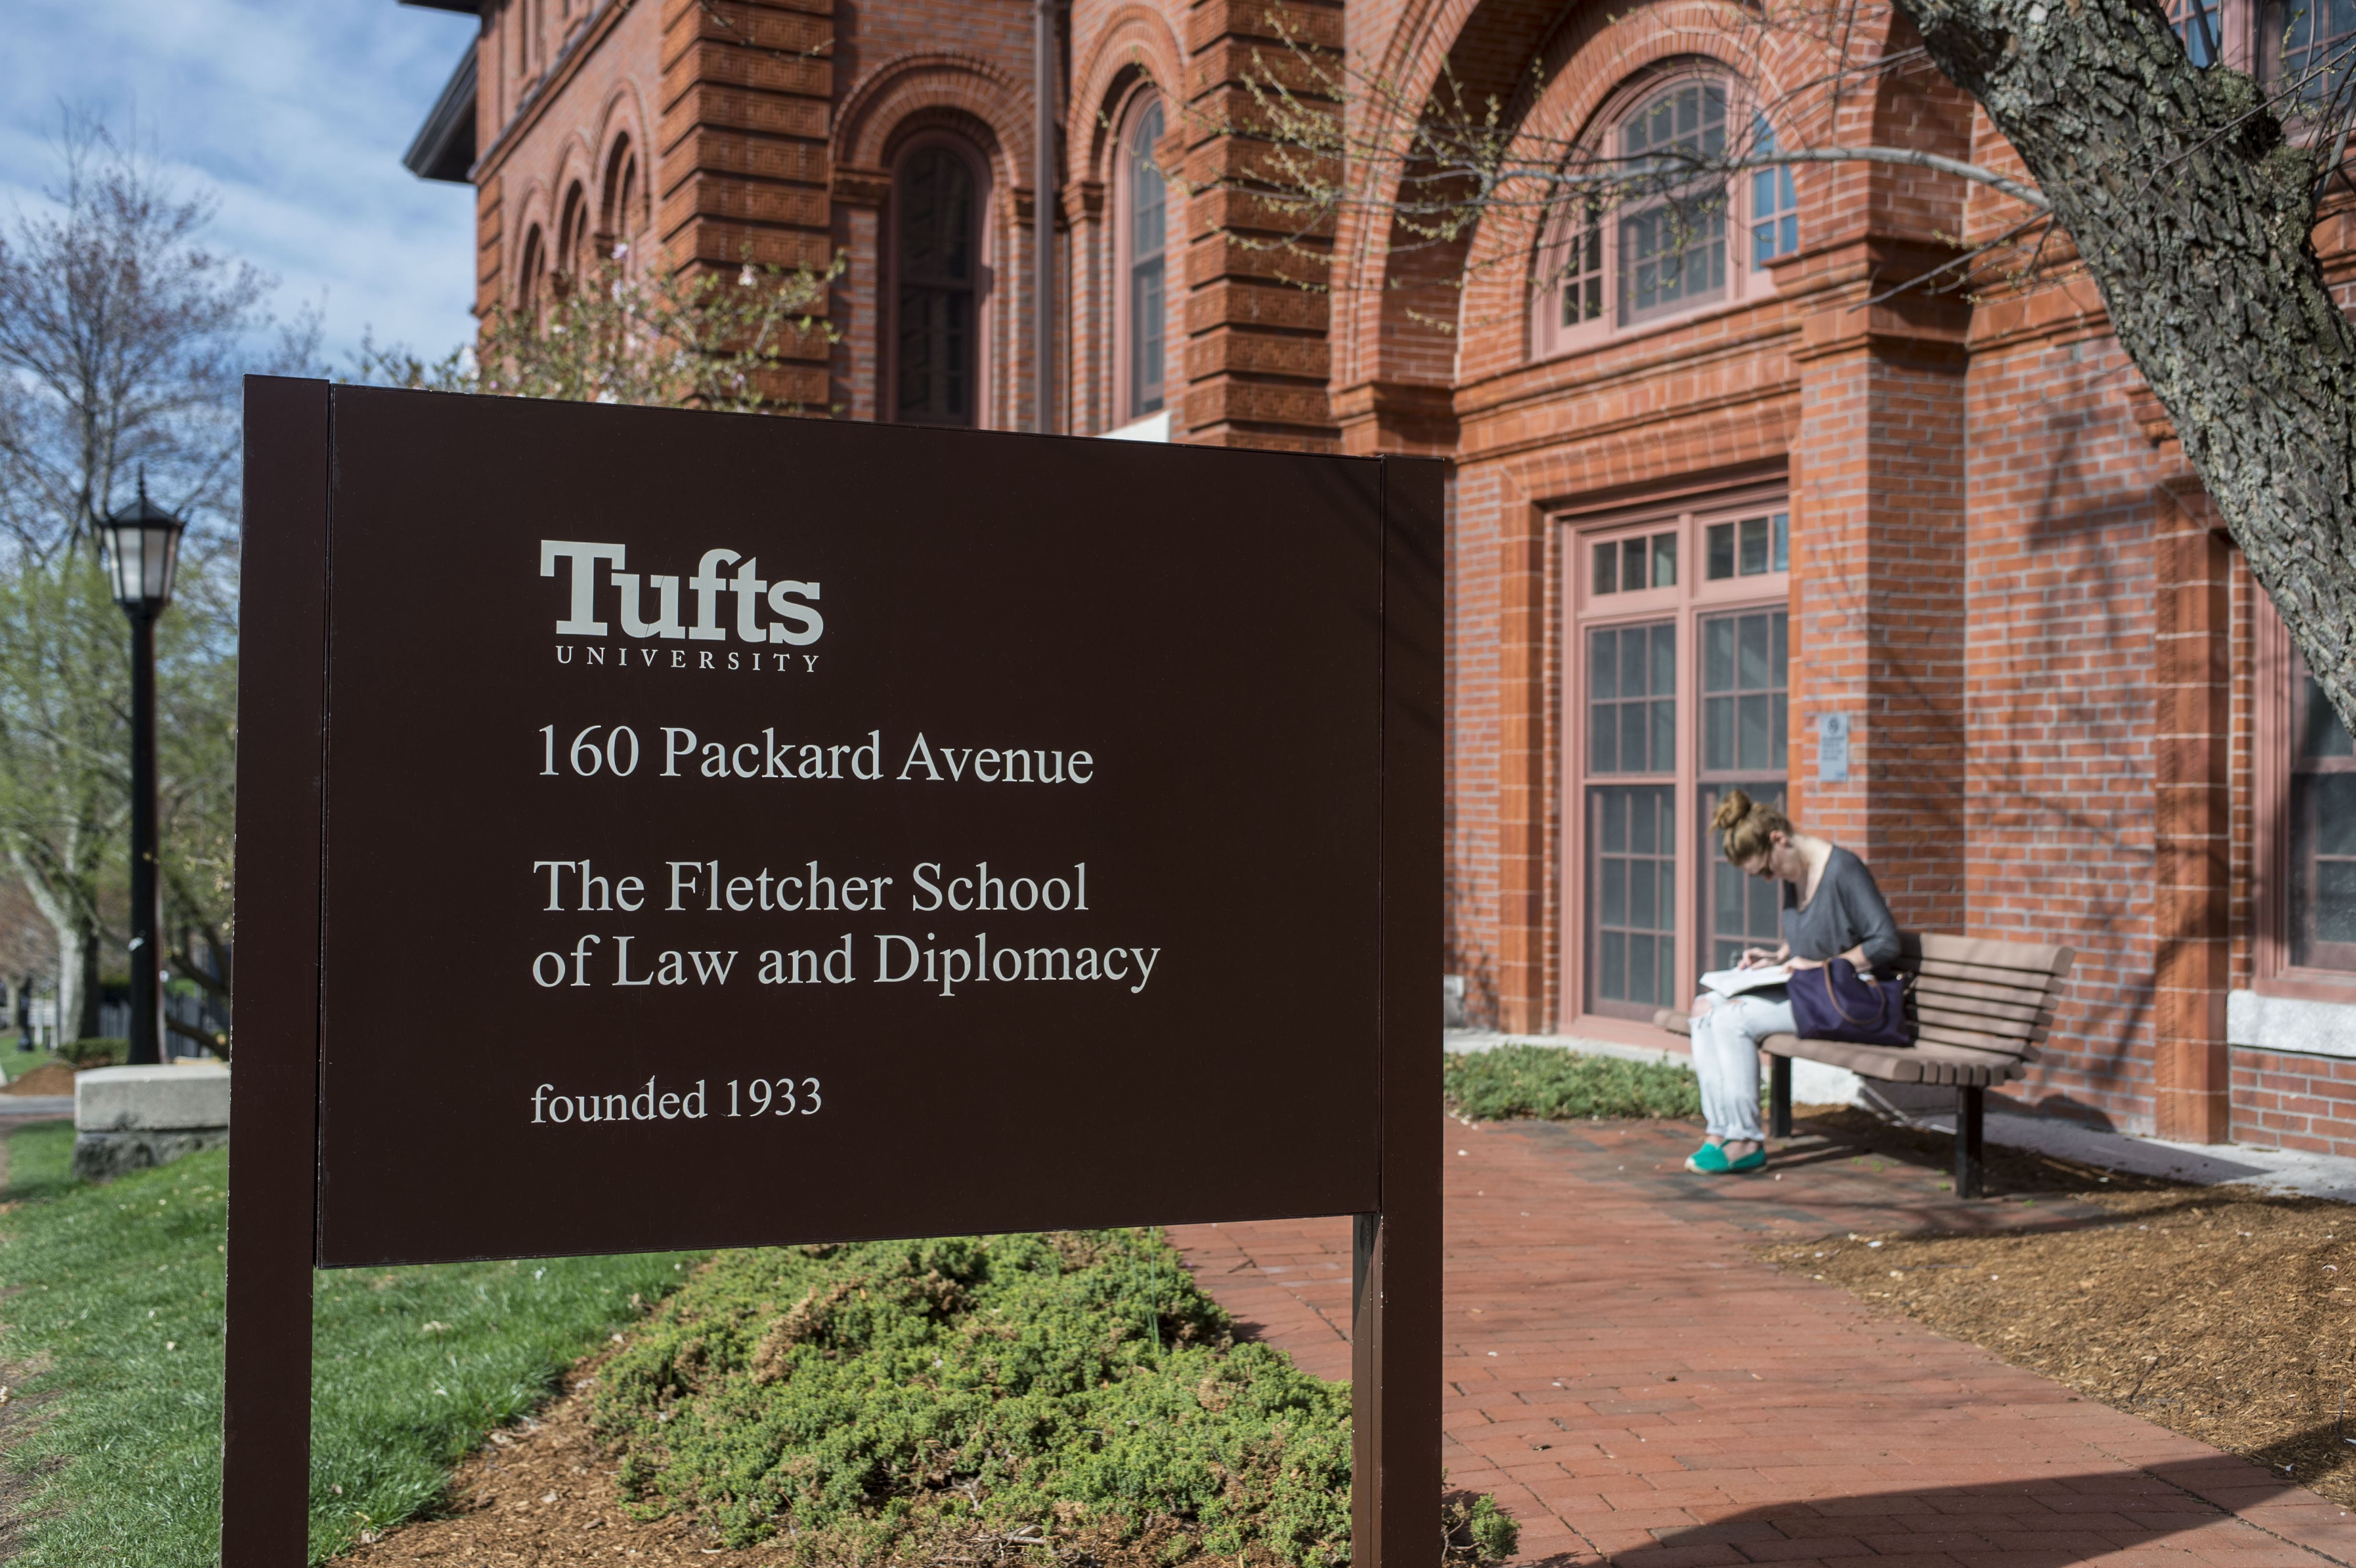 The Fletcher School sign at 160 Packard Avenue at Tufts University